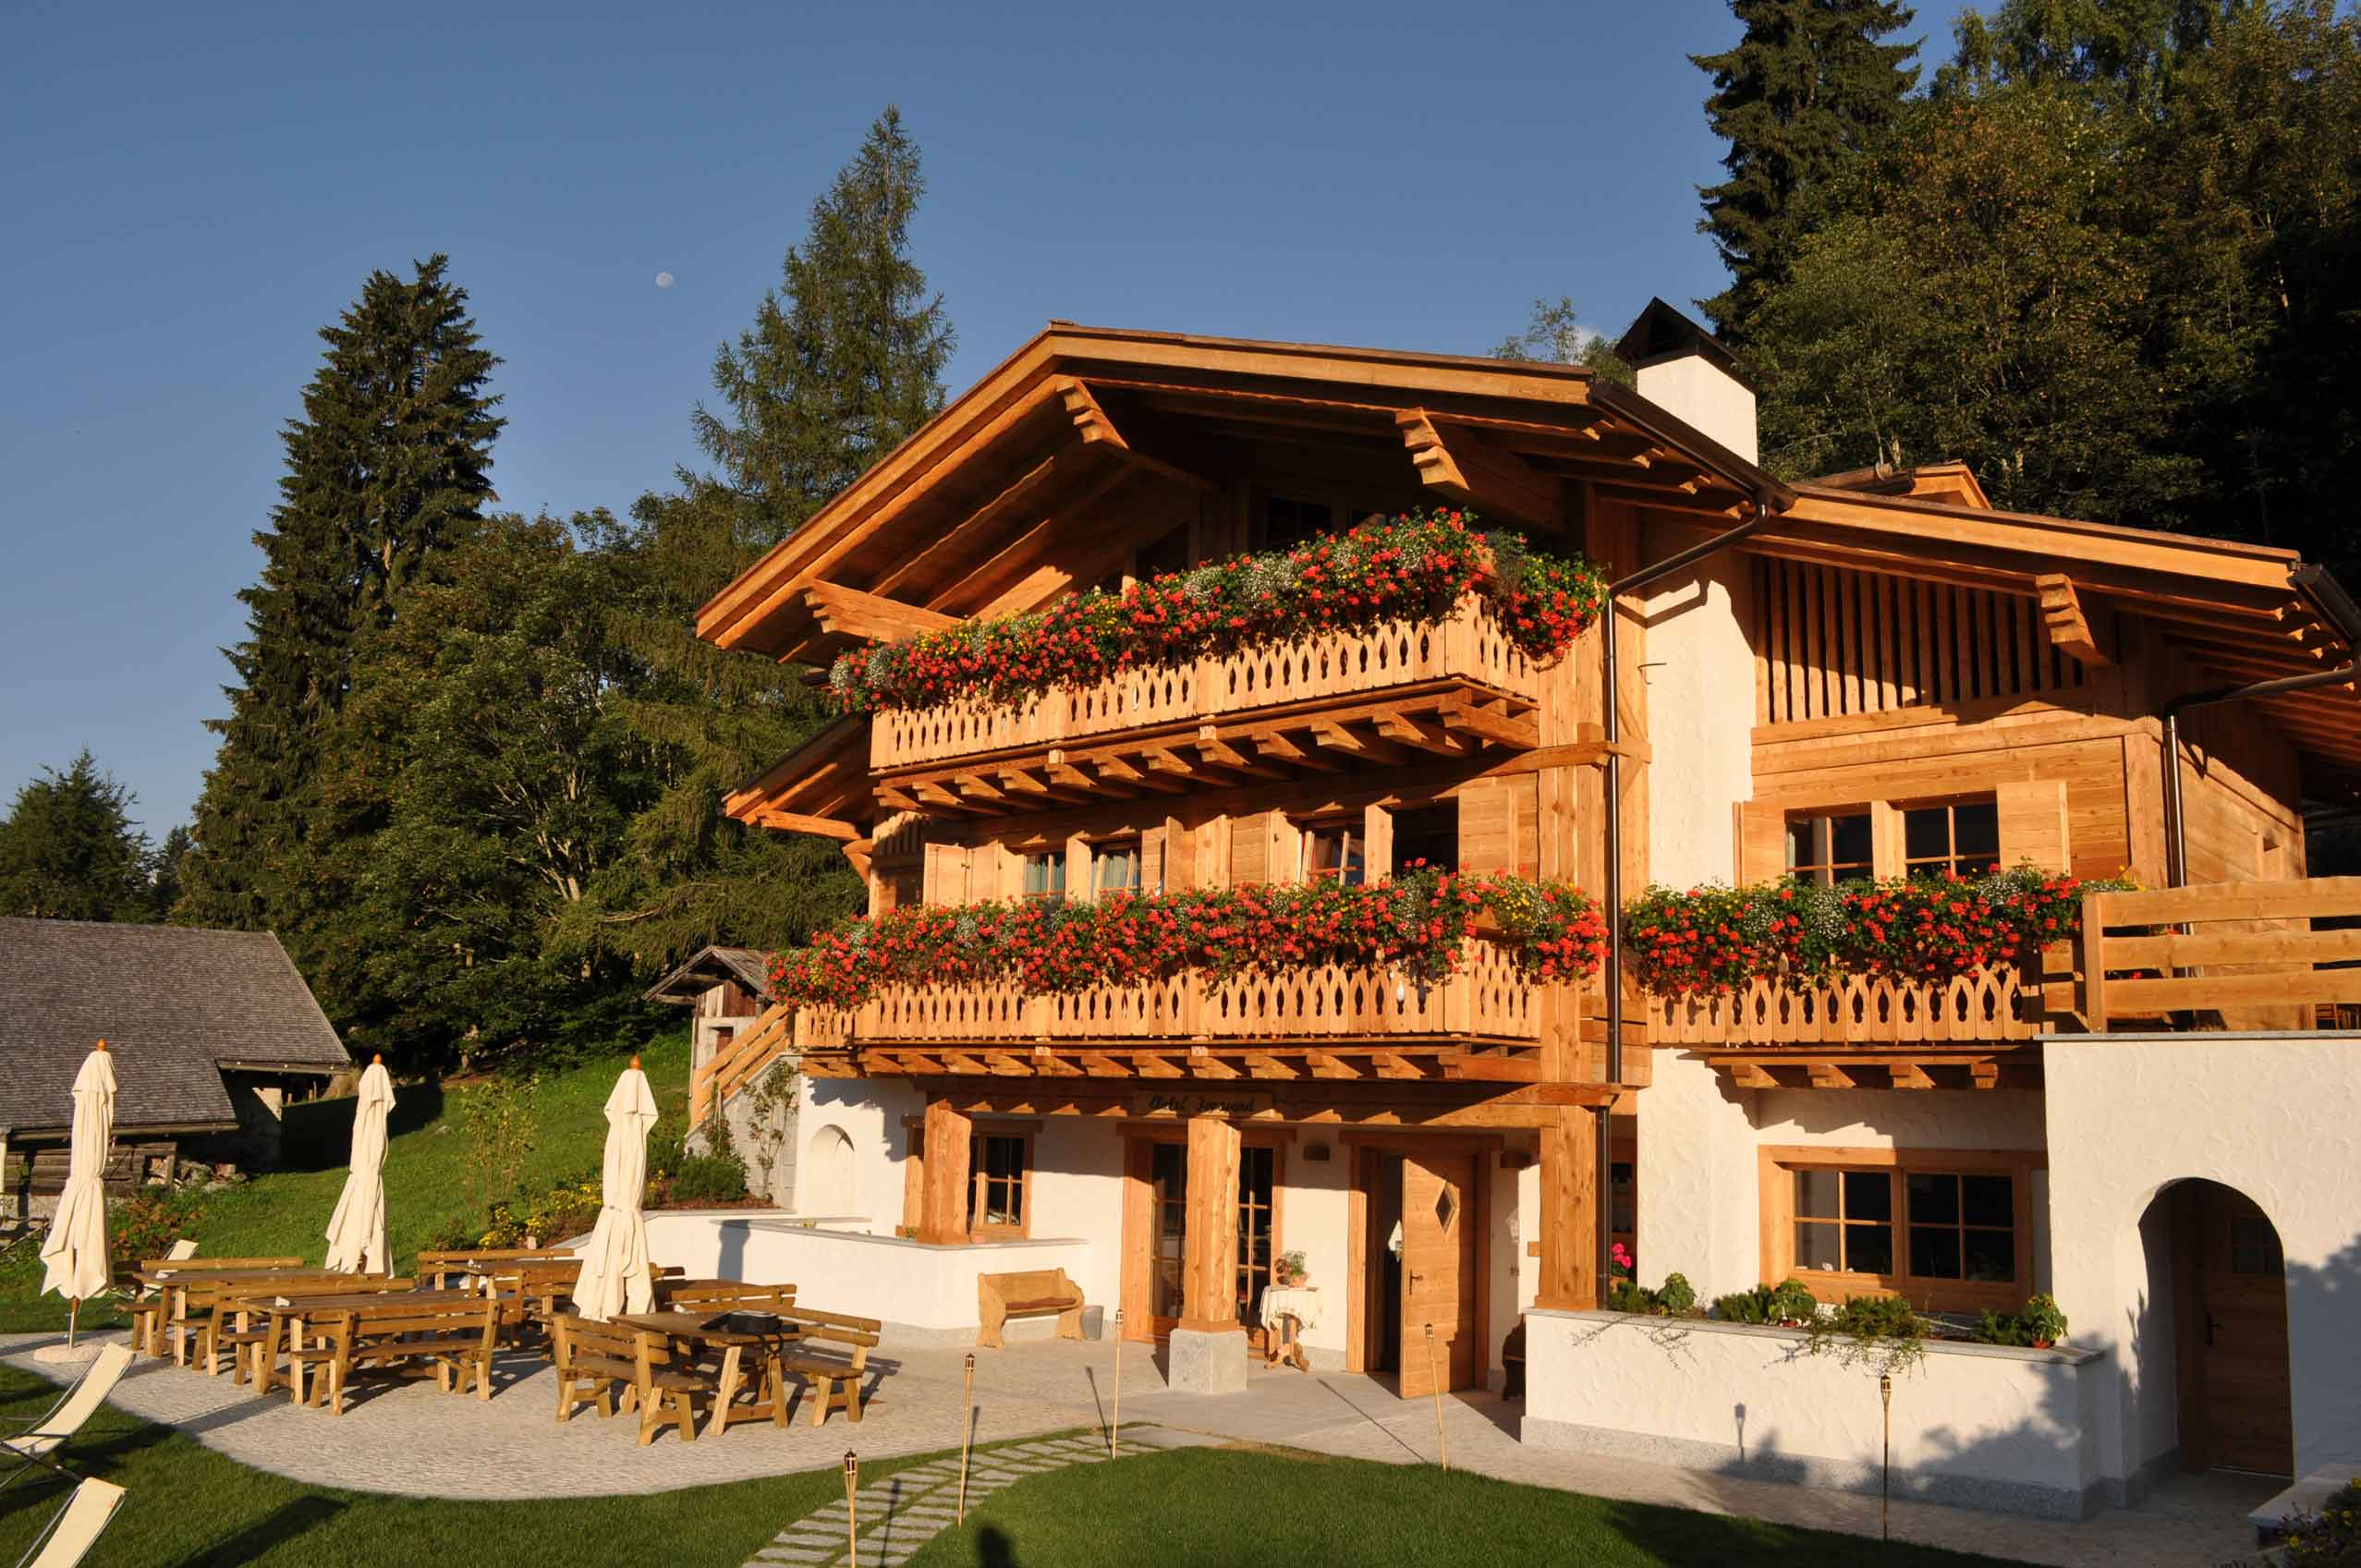 Madonna di Campiglio is equipped with an energy saving biomass boiler, and solar panels producing hot water and cistern for rainwater collection used for irrigation.